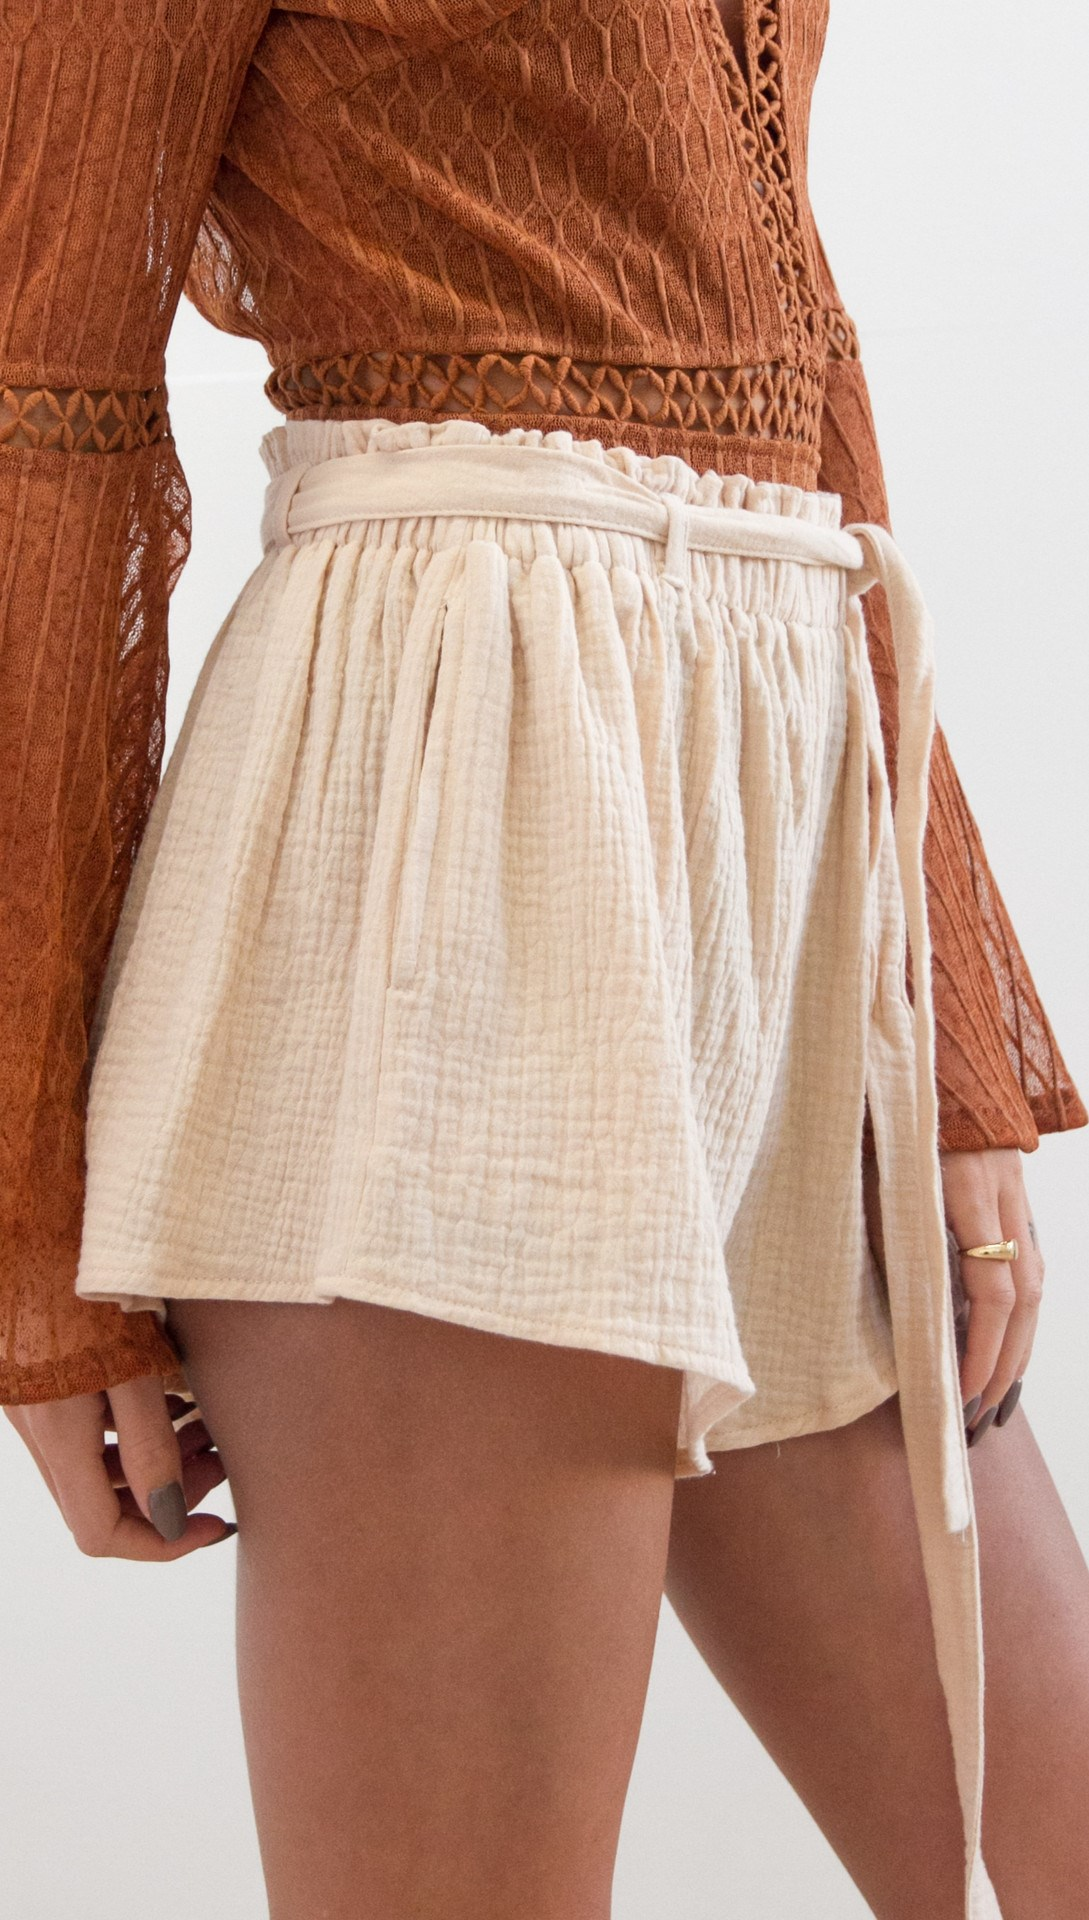 Pop Tide Nice Fashion Women Lace Up Casual Shorts Belt Solid Loose Shorts Sashes Elastic High Waist Summer Shorts - 3